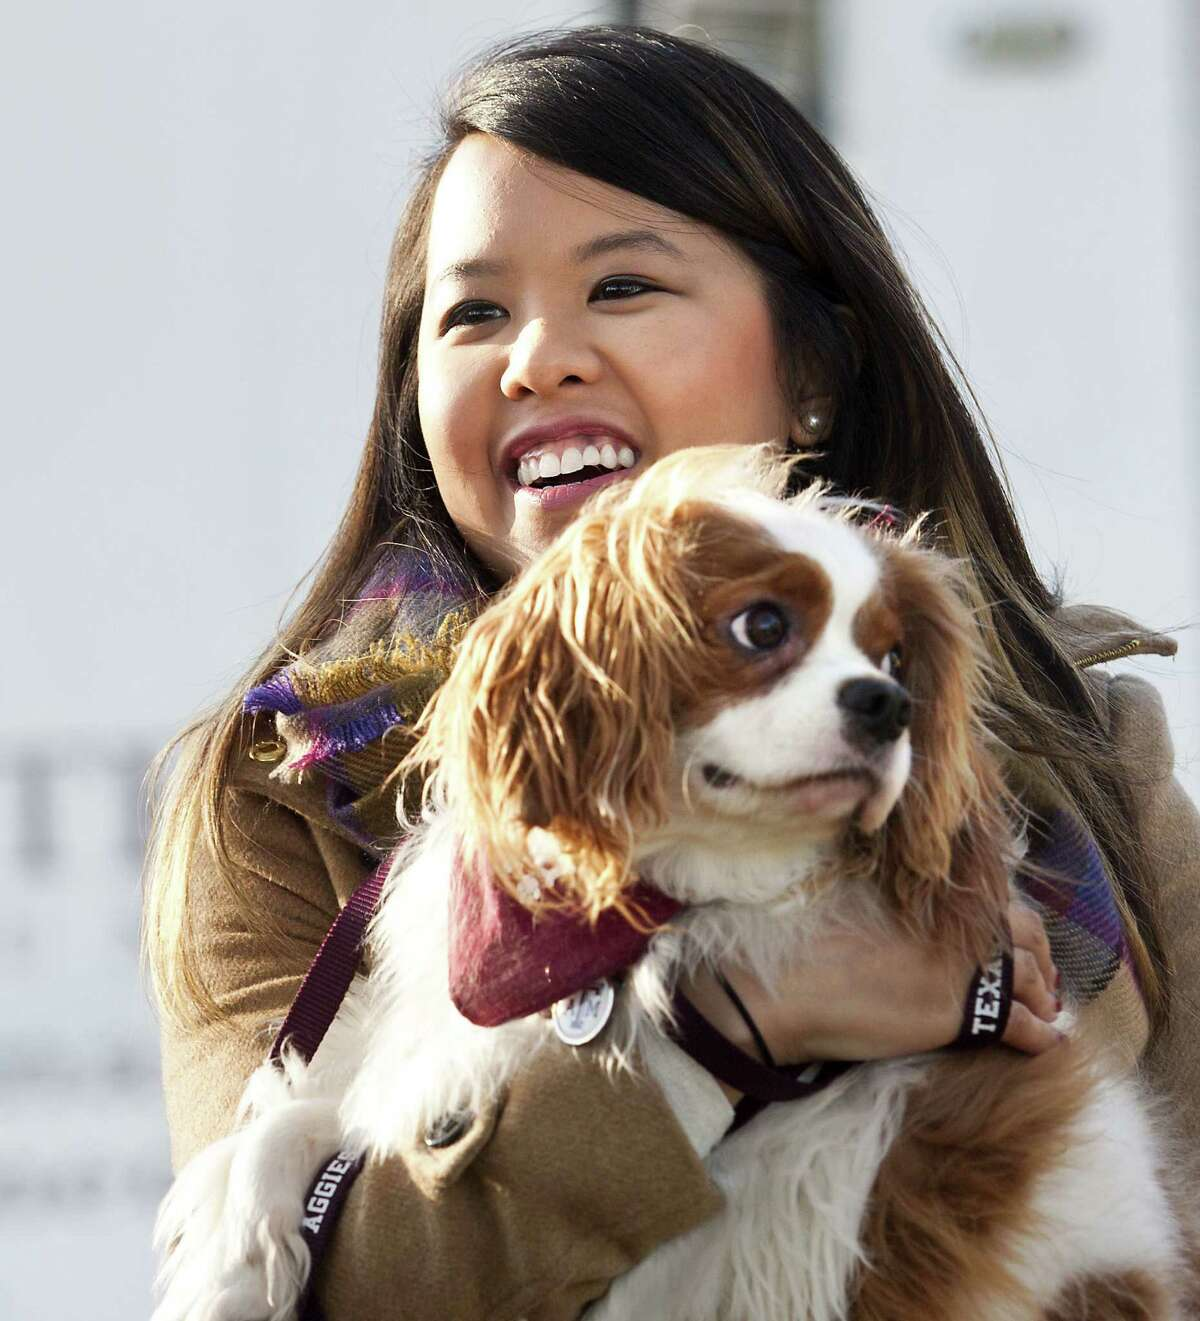 Nina Pham holds up her dog Bentley at Hensley Field in Grand Prairie. Pham, who recovered from Ebola, and the King Charles Spaniel were reunited privately Saturday in a vacant residence where officers once lived at a former naval air base, where he had been quarantined.